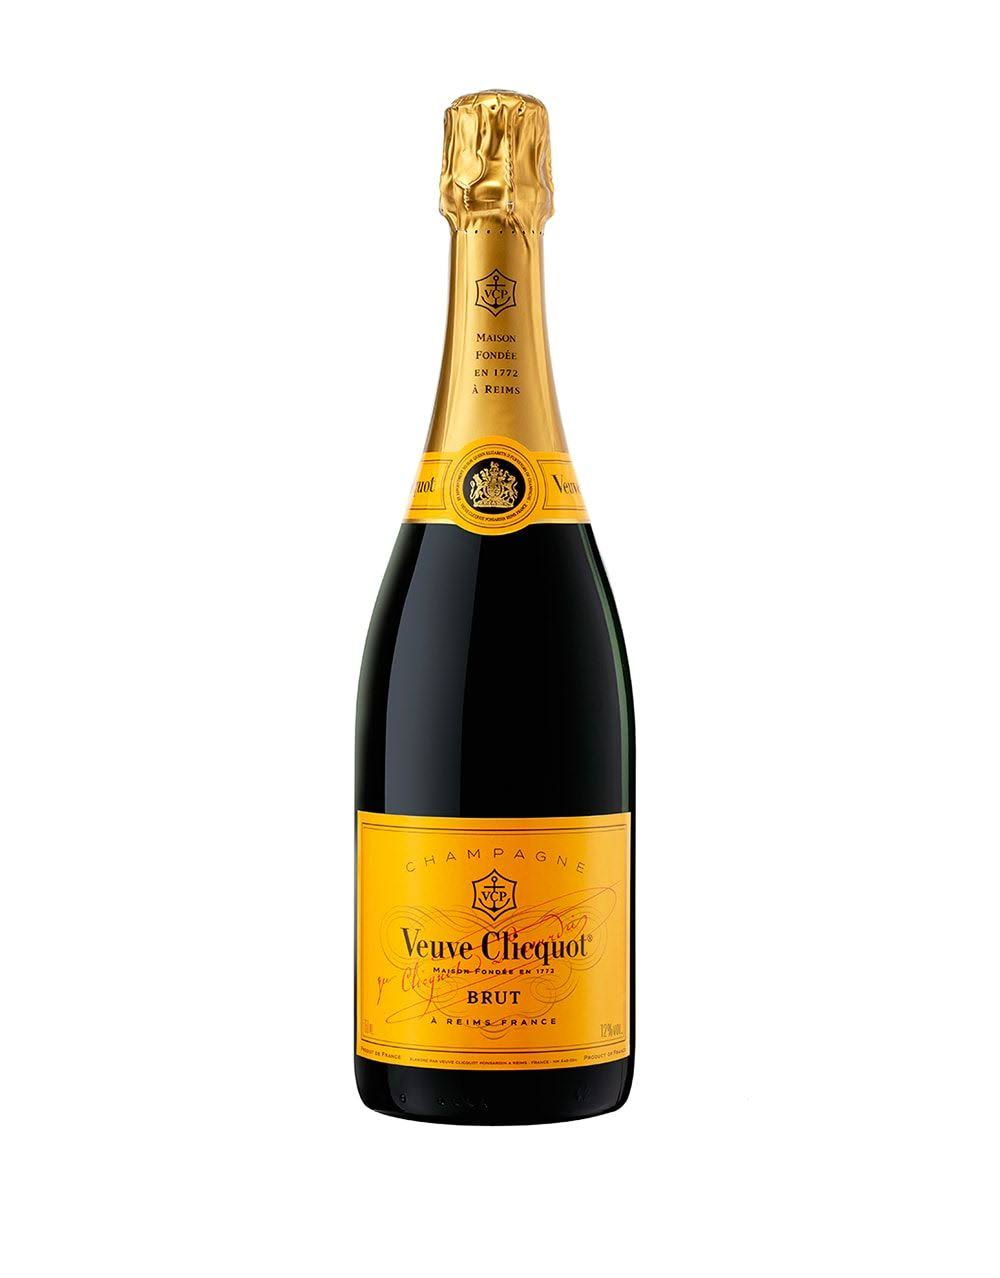 Veuve Clicquot NV Brut Yellow Label Champagne - 750 ml bottle